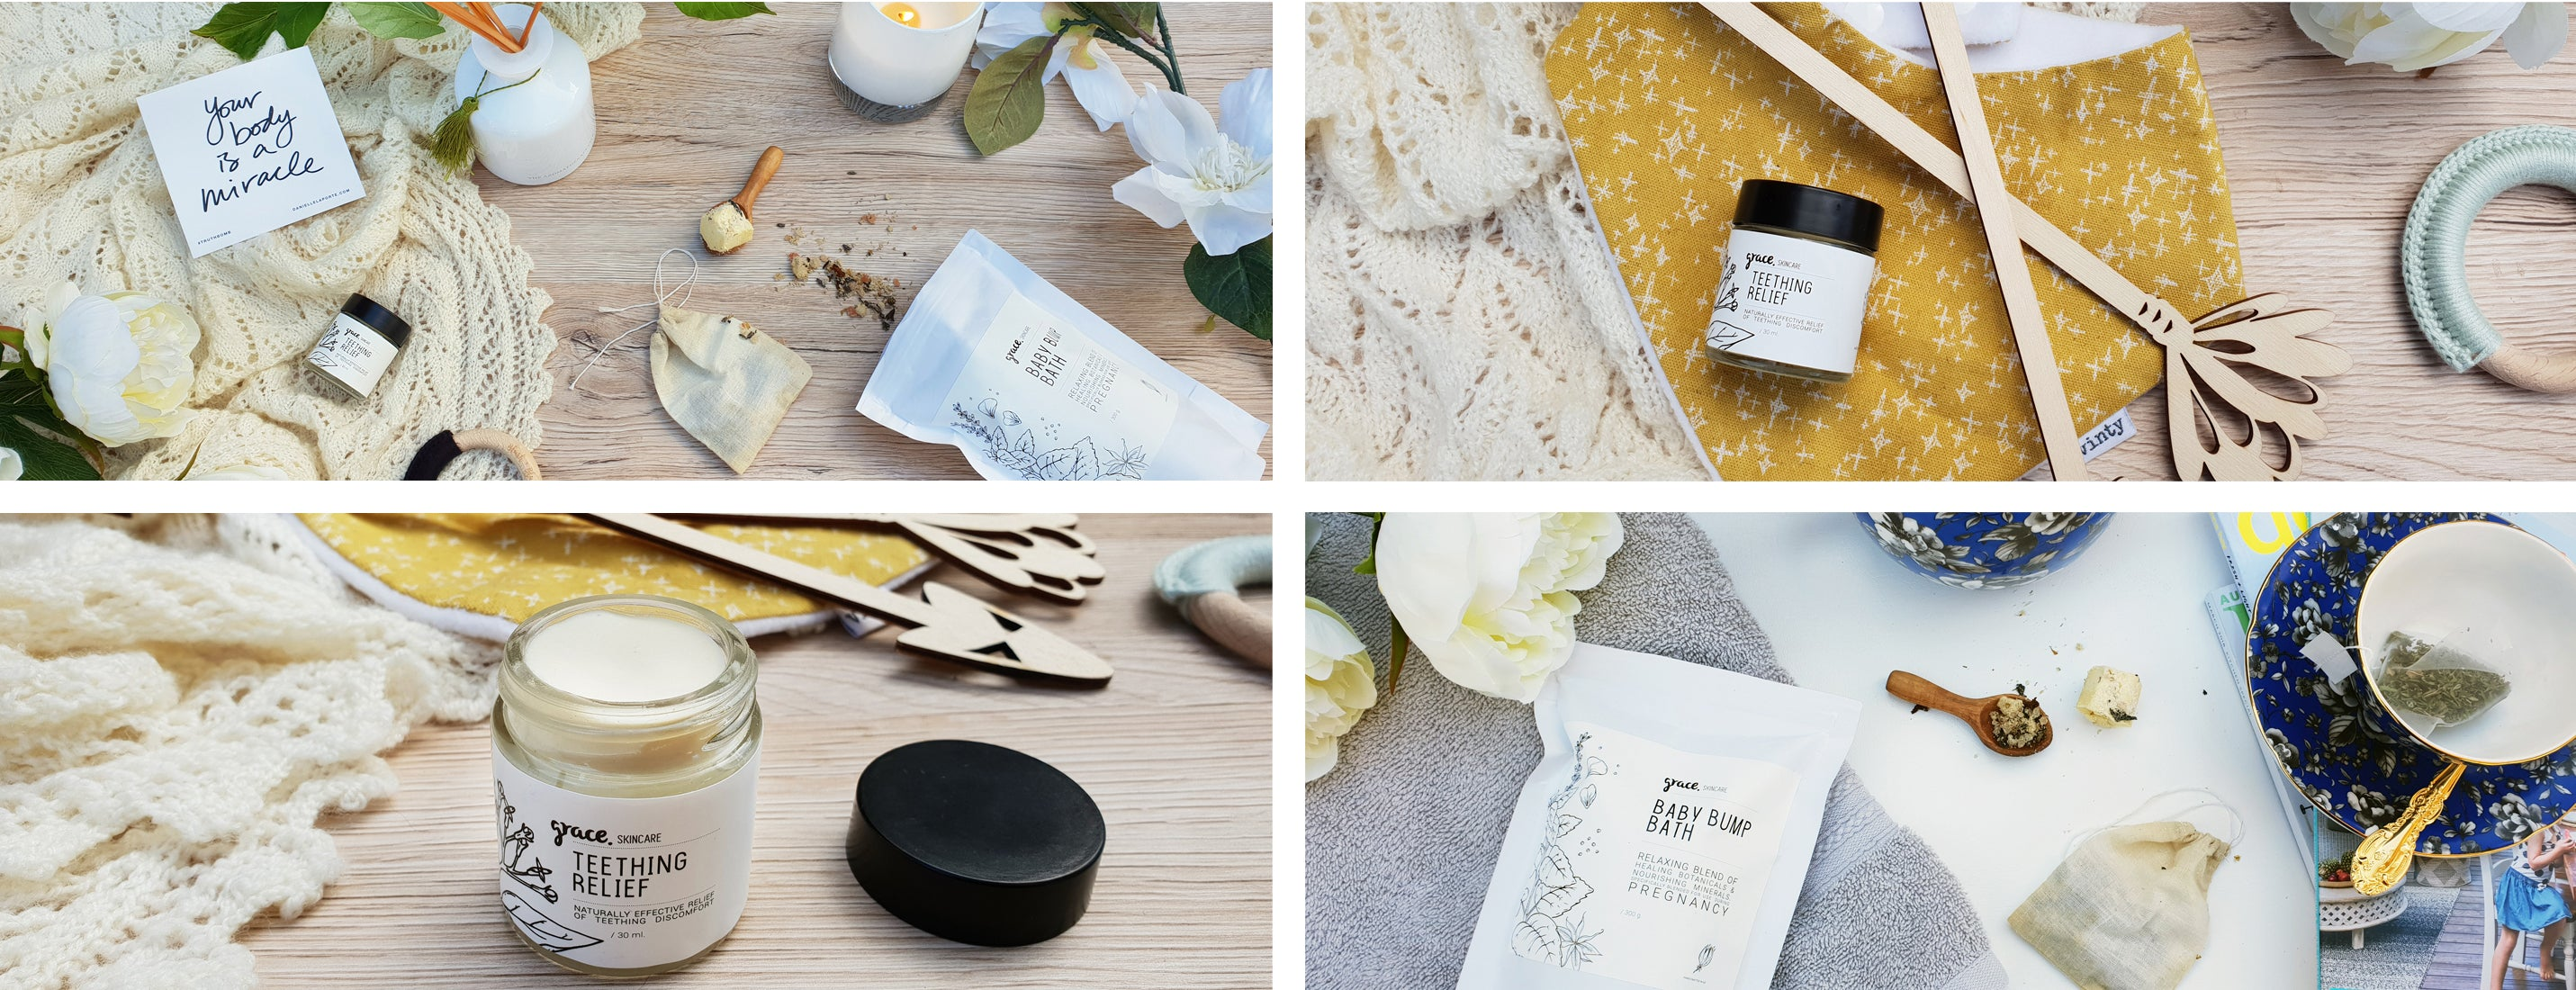 grace skincare product styling